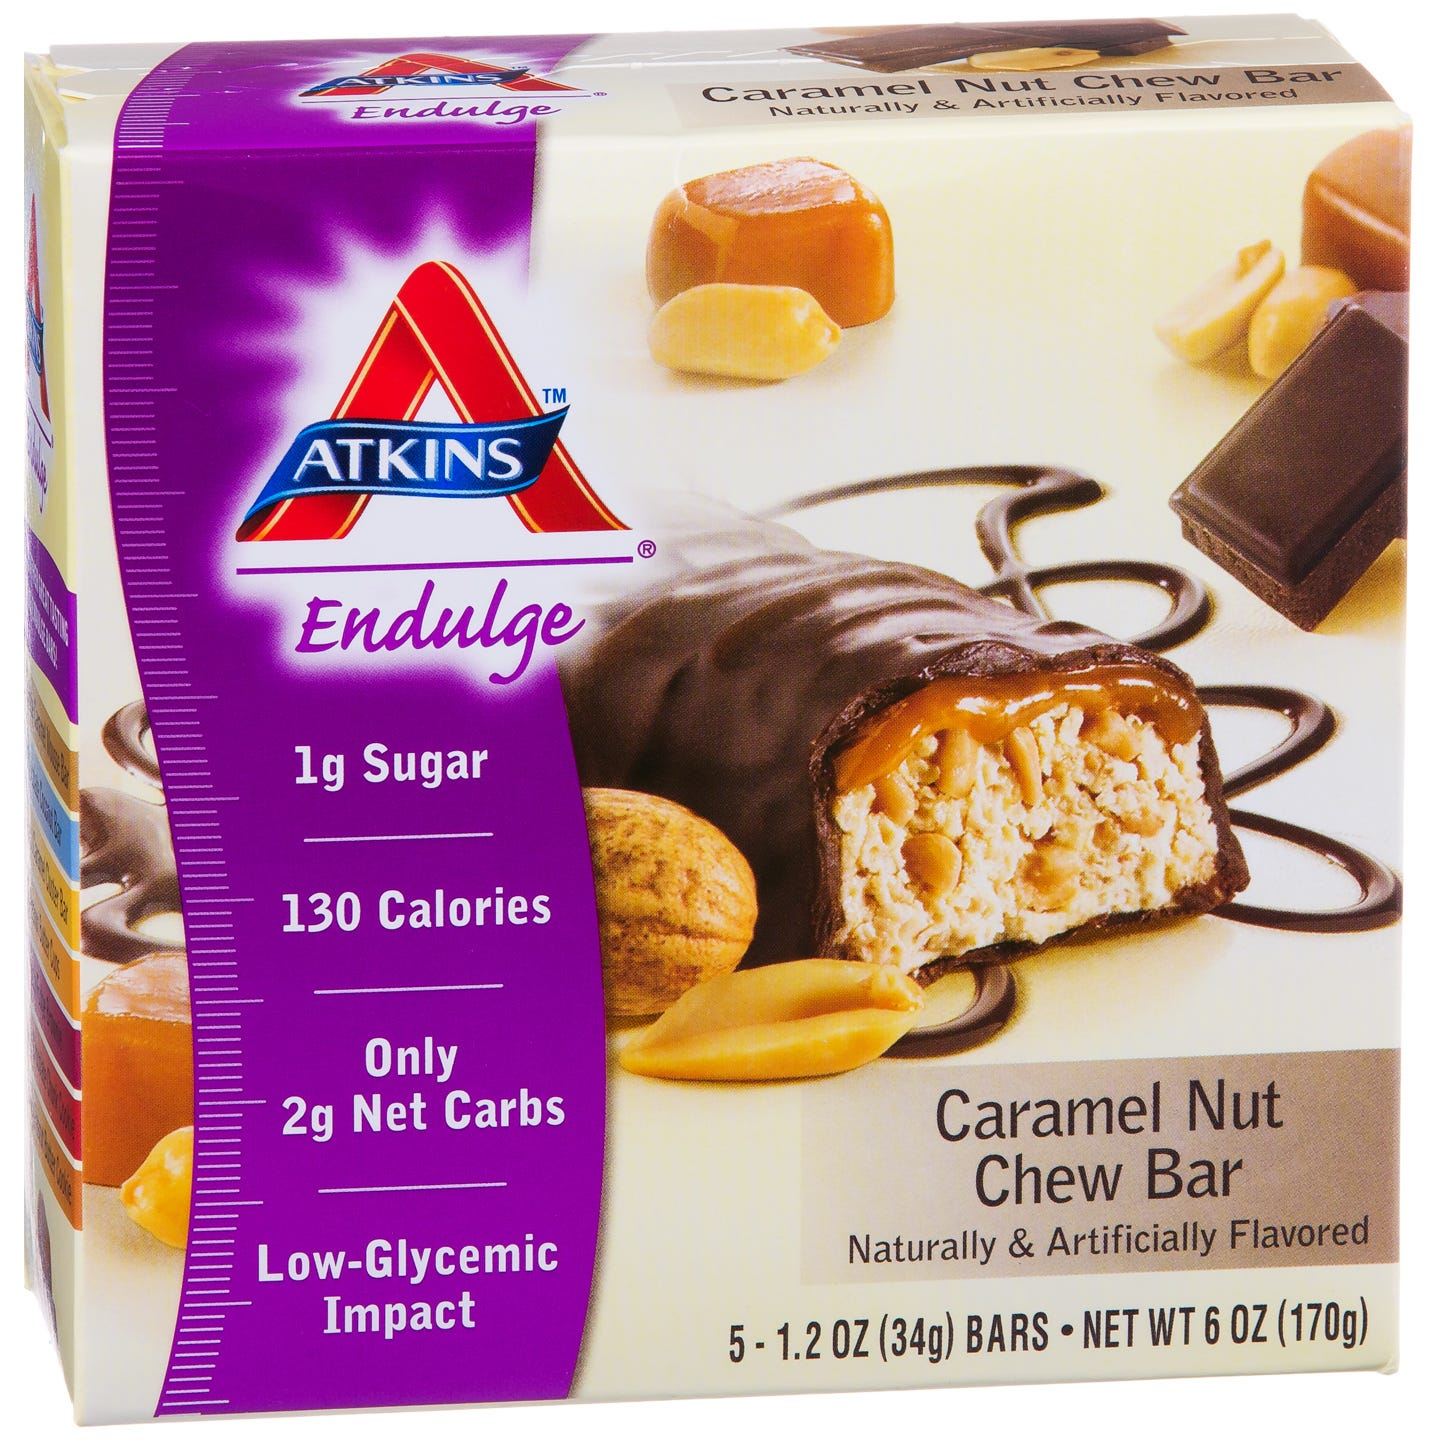 Atkins Endulge Bar - Caramel Nut Chew